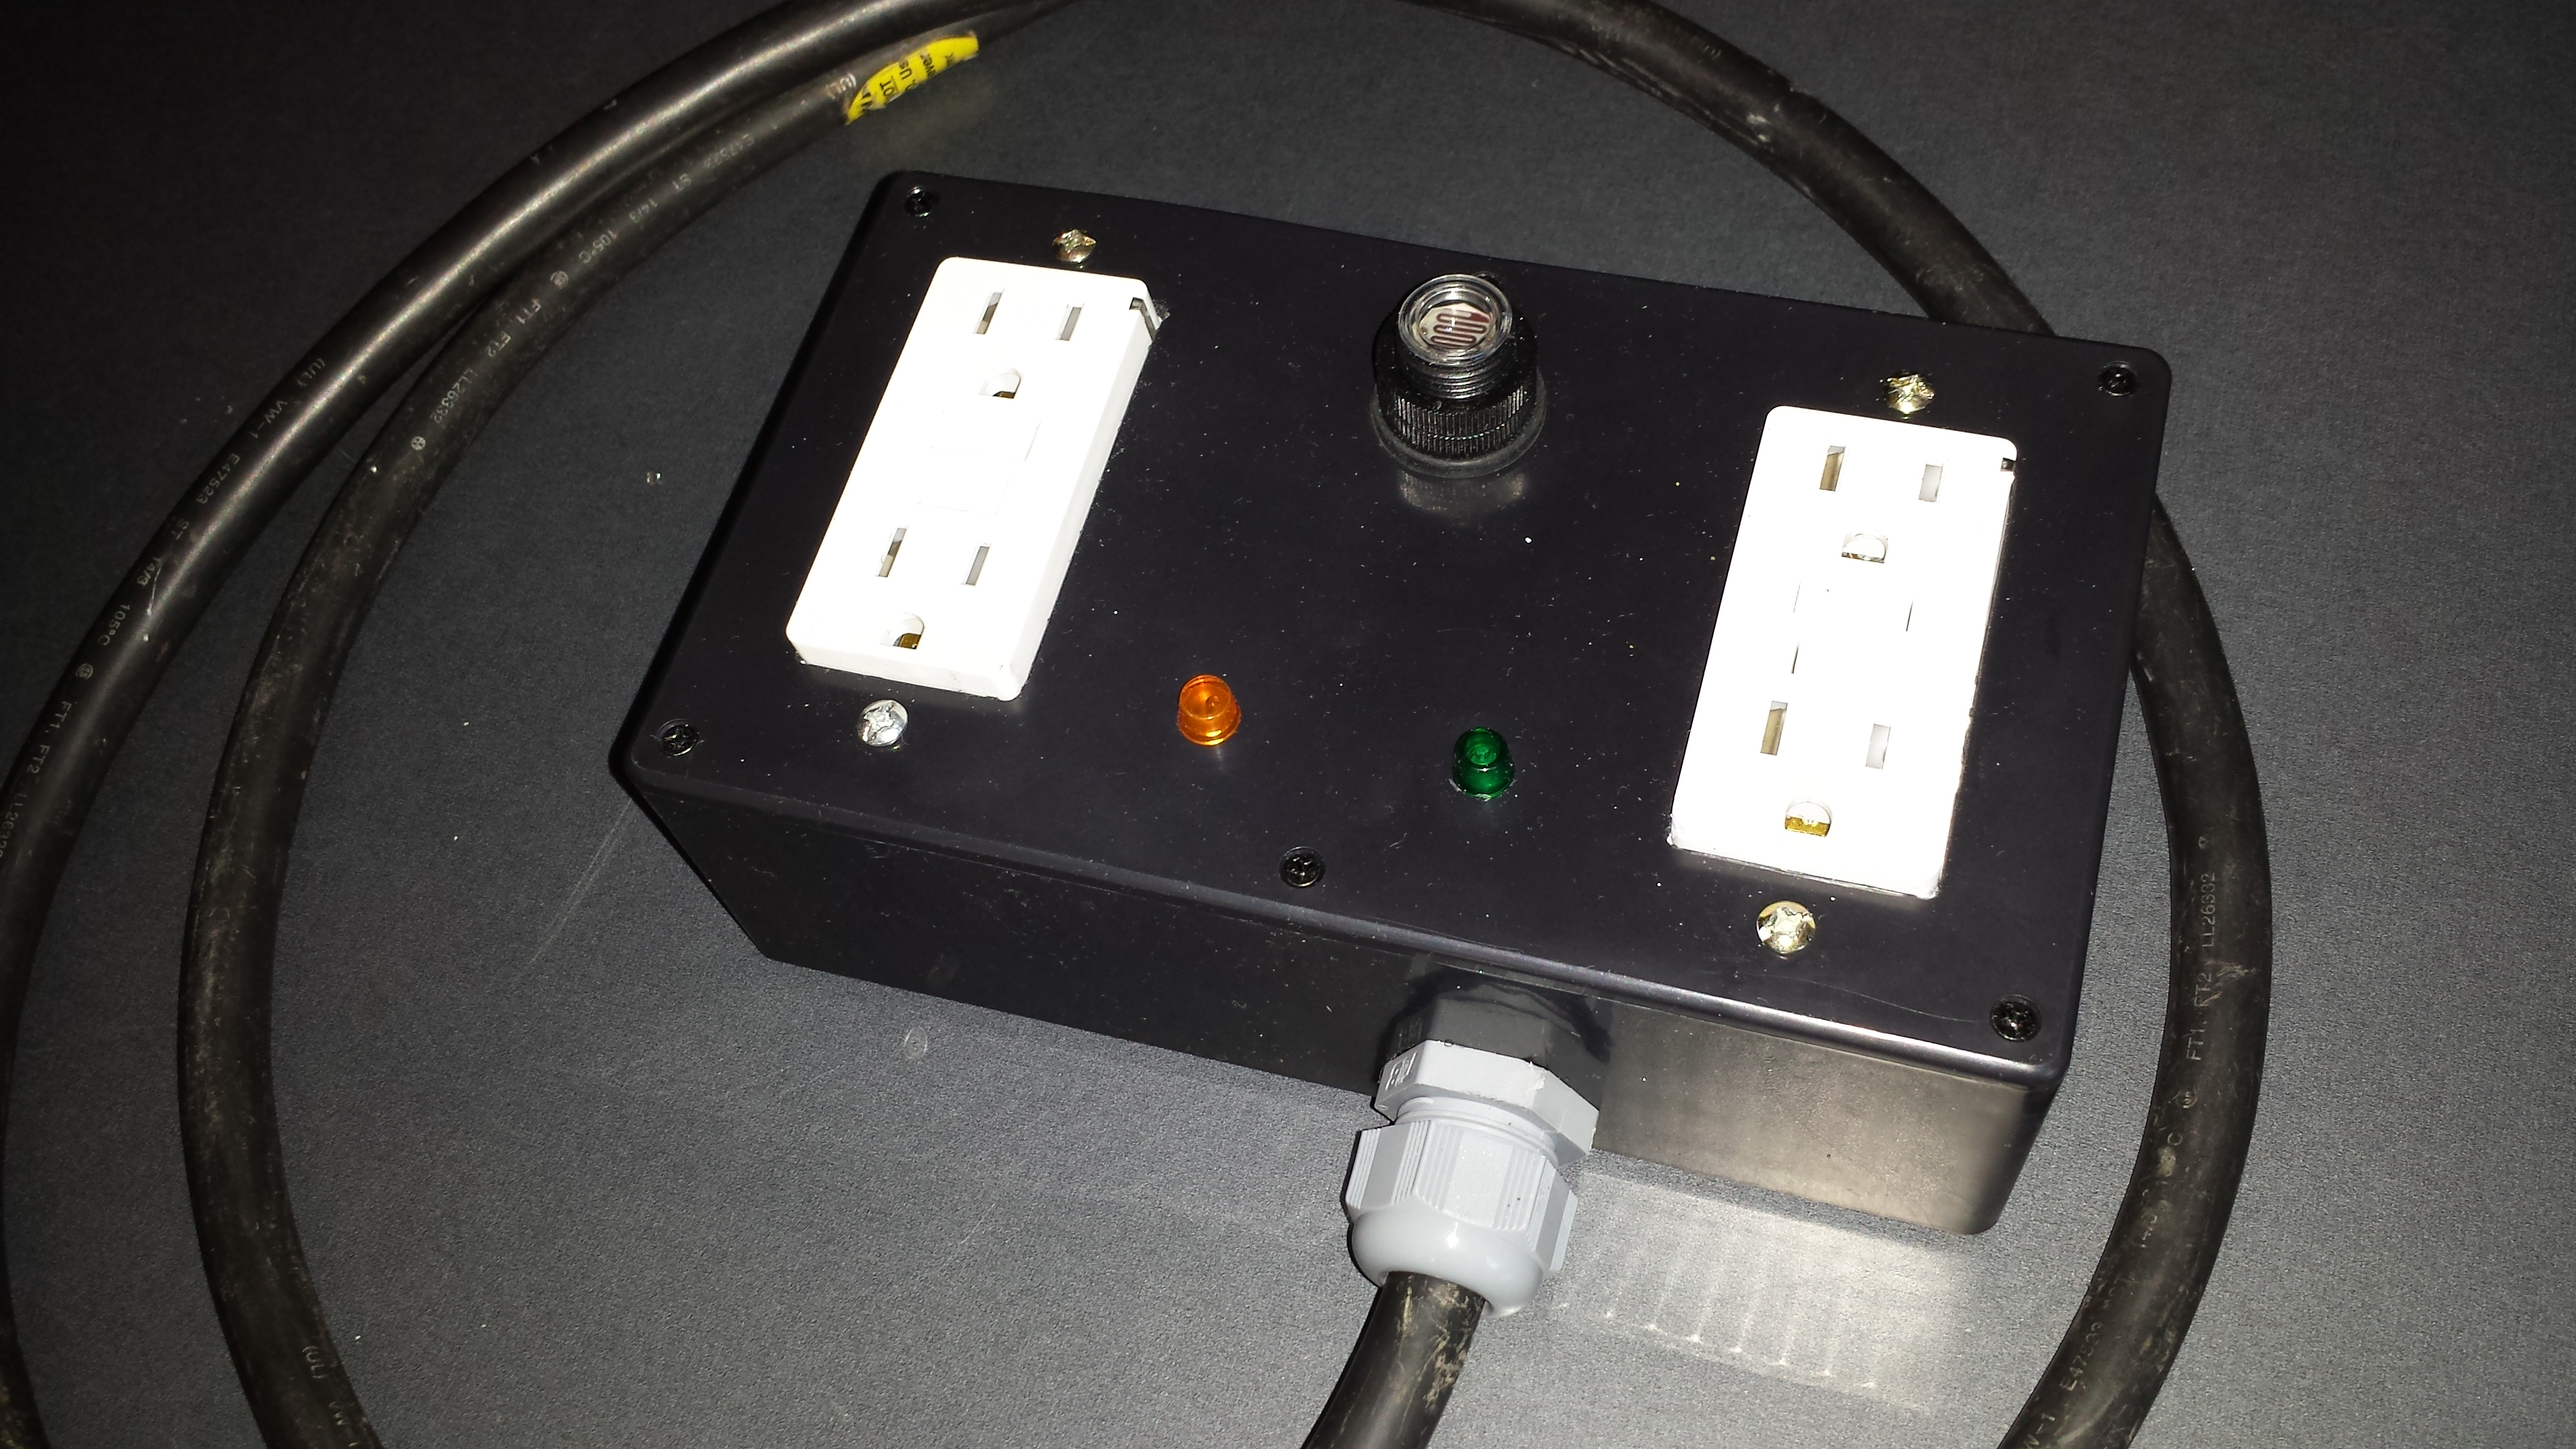 small resolution of photo sensor controlled outlet turns on or off at daylight or nightime